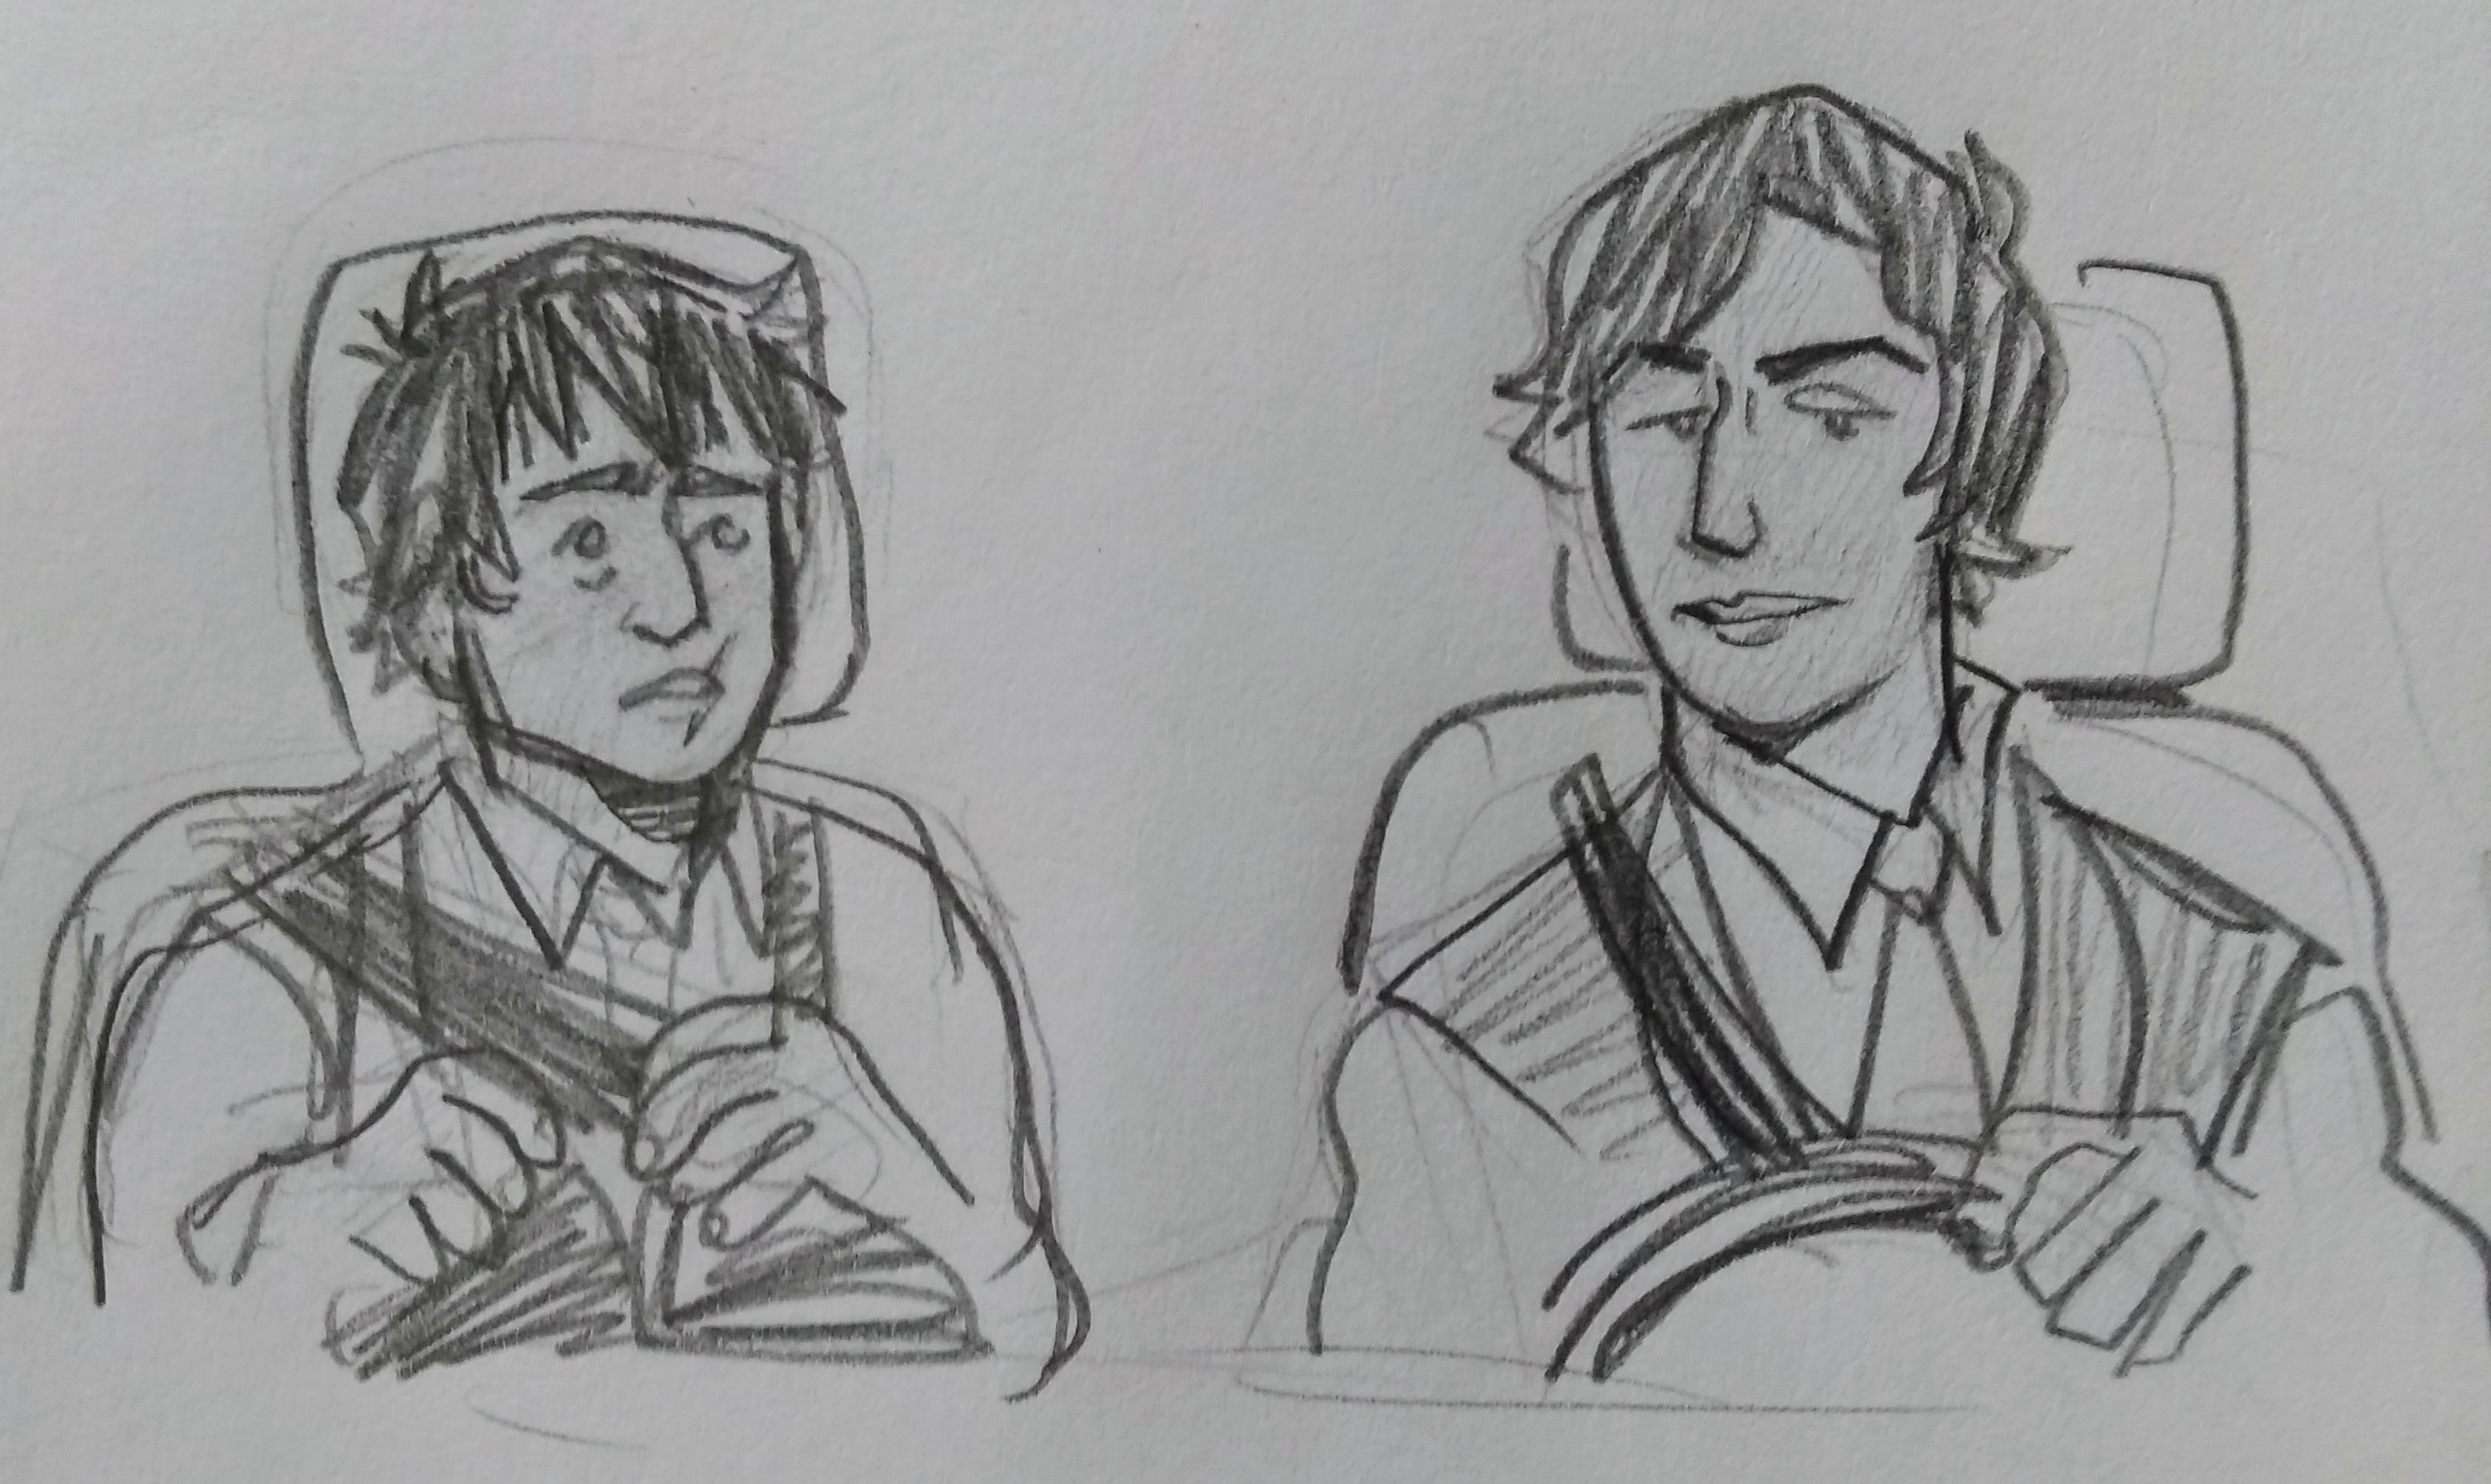 Caspian nervously sits in the passenger's seat as alan drives the two of them somewhere